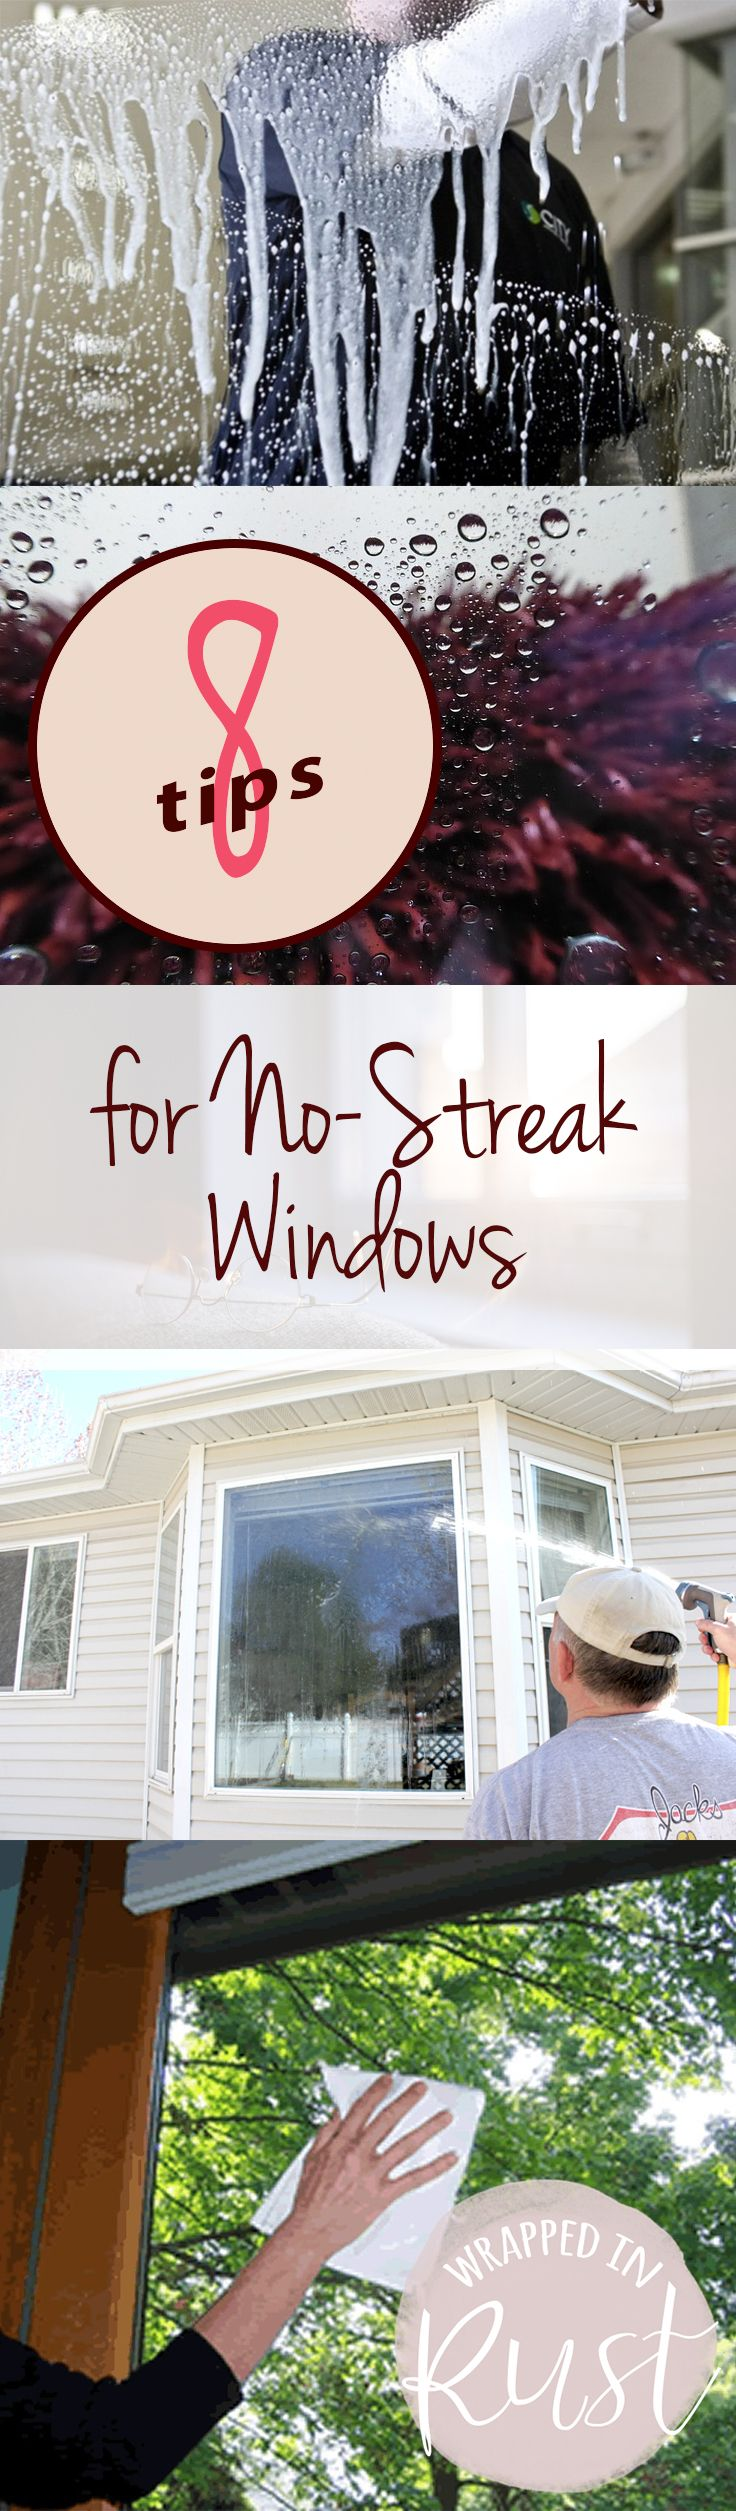 8 Tips for No-Streak Windows| How to Get No Streak Windows, Window Cleaning Tips and Tricks, The Right Way to Clean Windows, Clean Home, Home Cleaning Hacks, Cleaning Tips and Tricks, Popular Pin